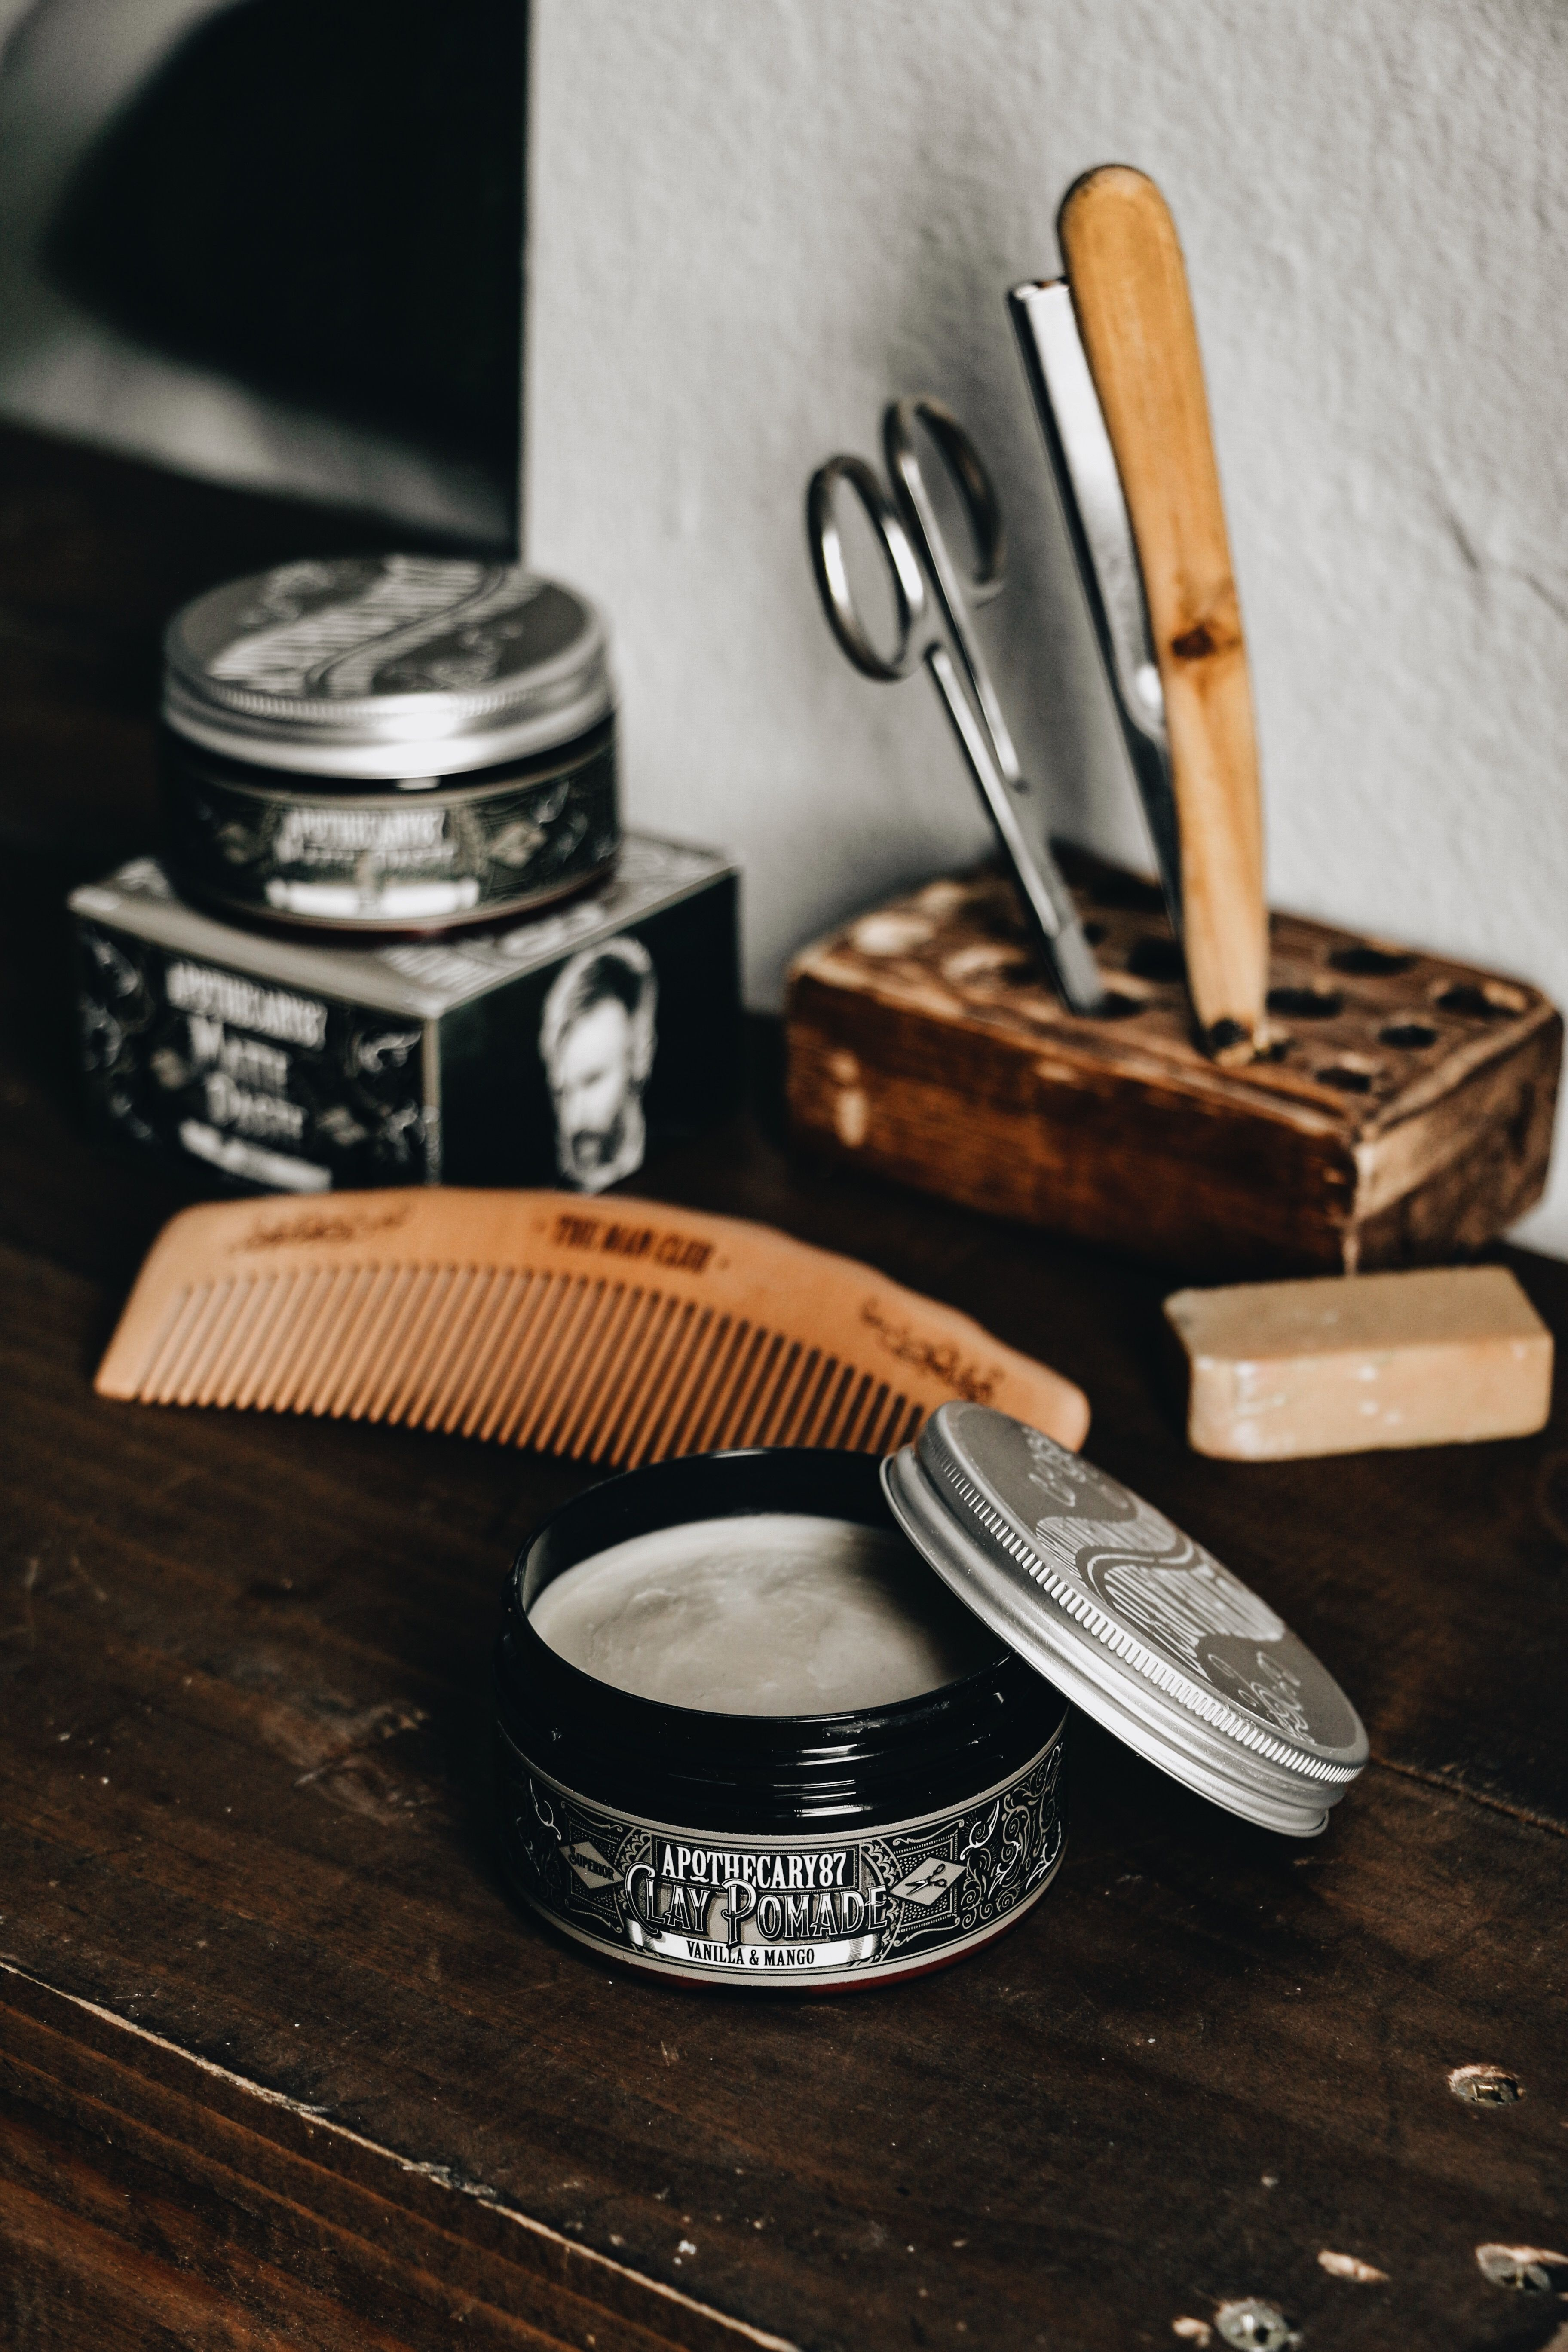 Male Grooming Salon in a vibrant district of London